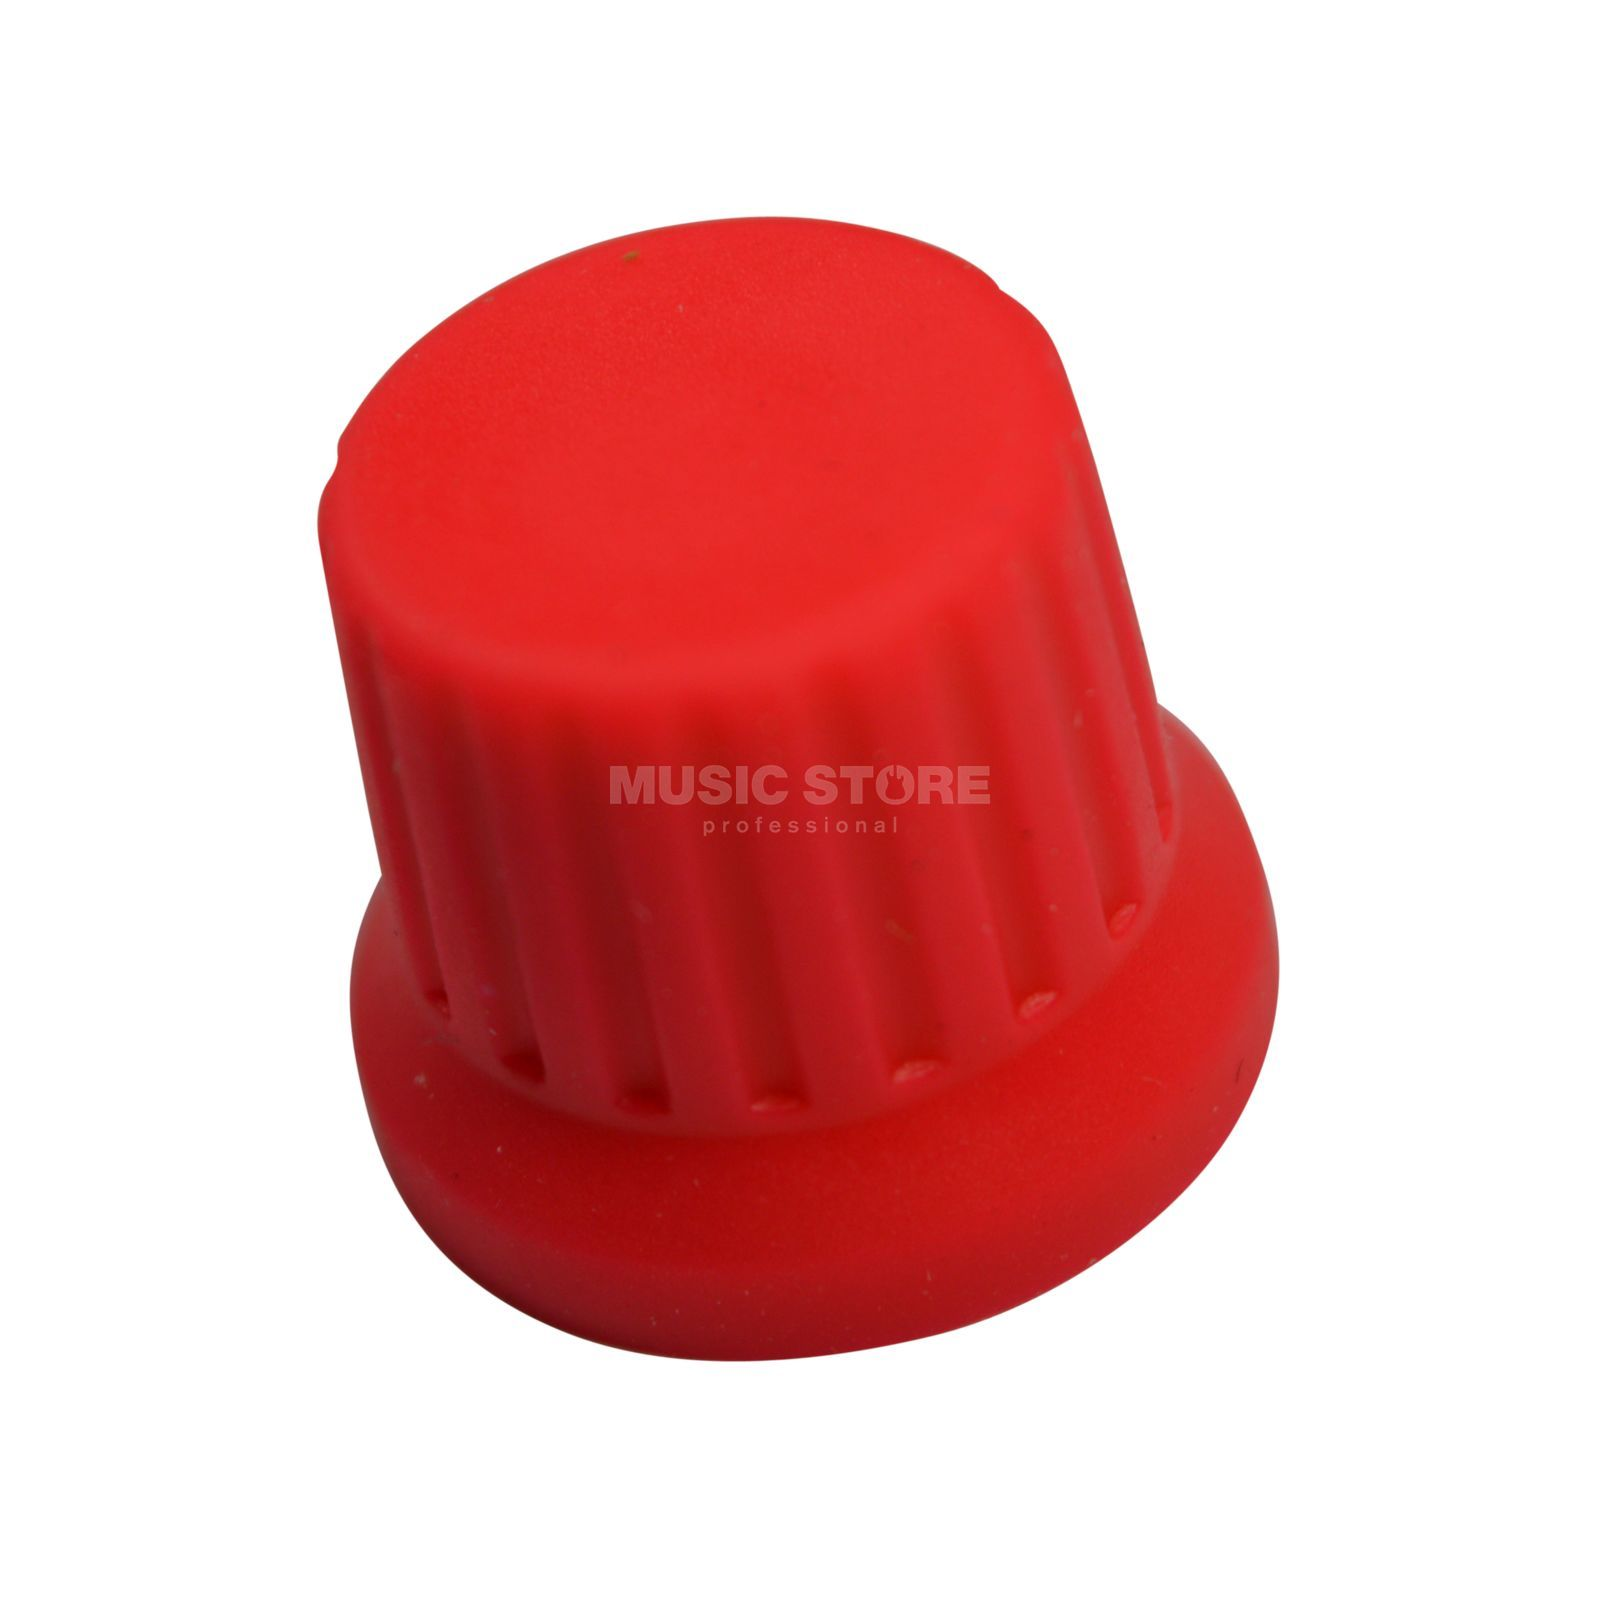 DJ TECHTOOLS Chroma Caps Encor Knob red Product Image